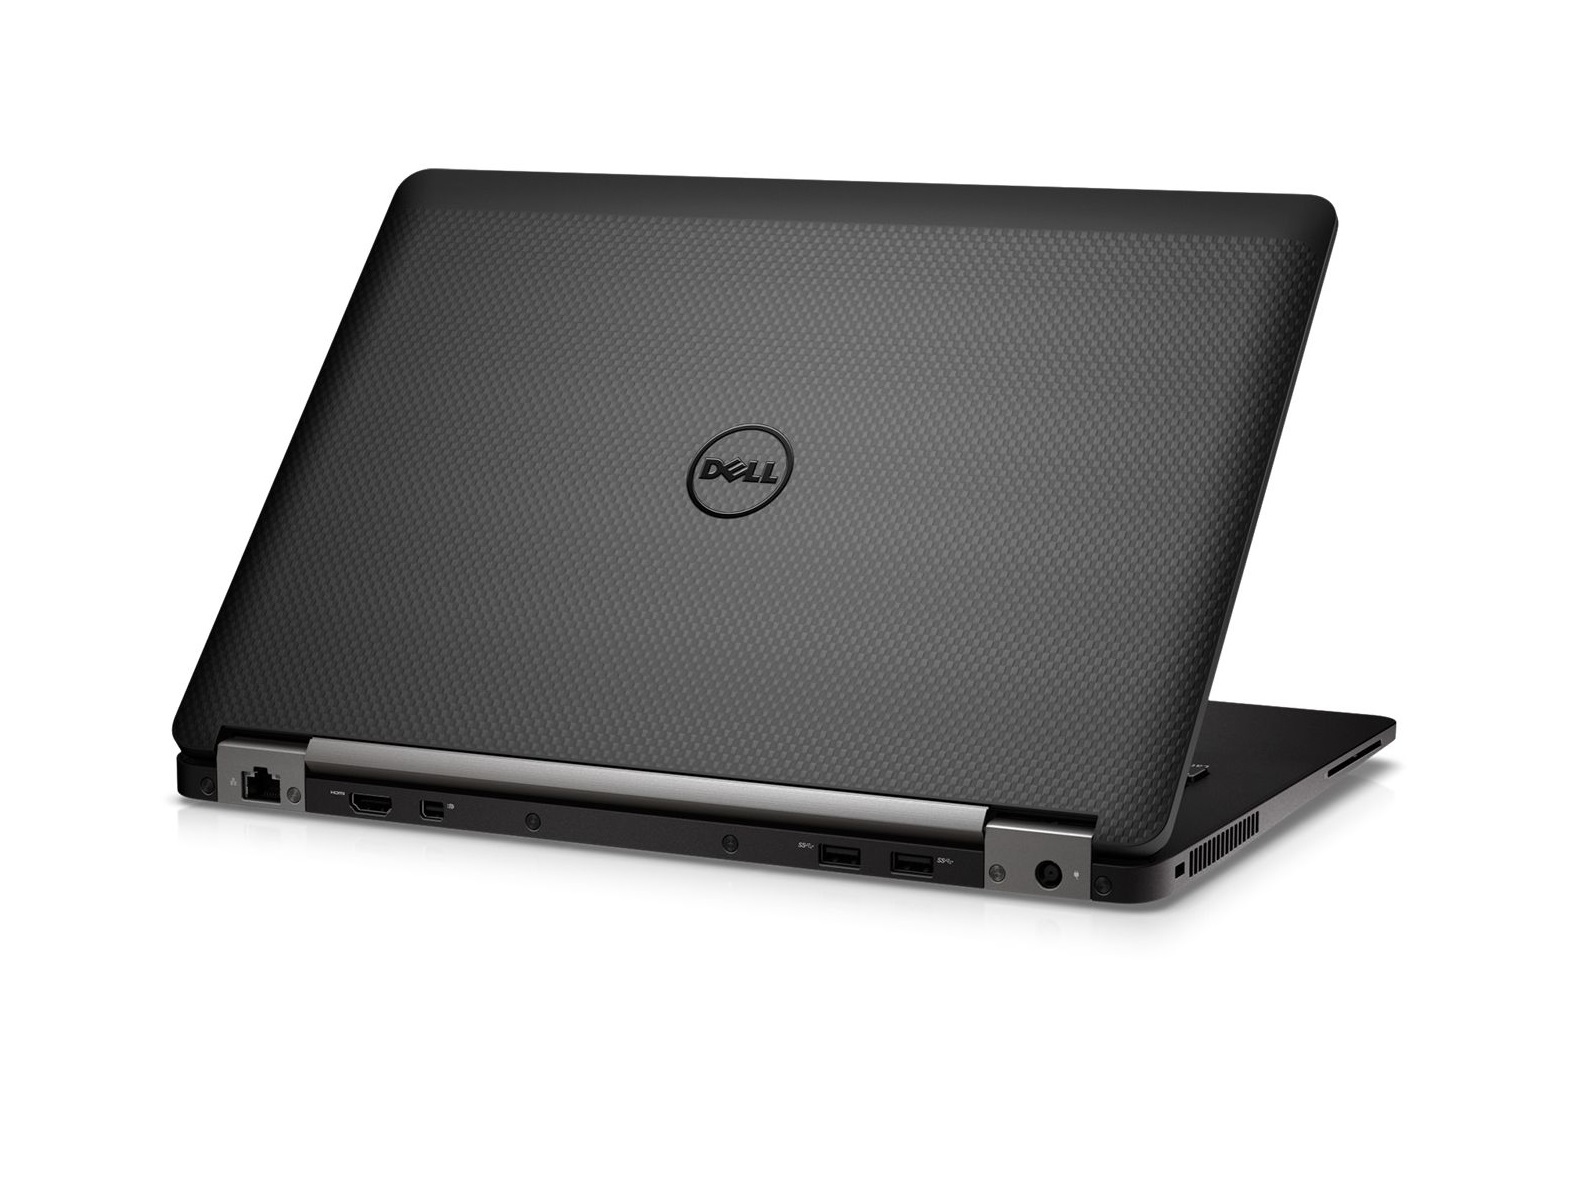 dell latitude e7470 drivers windows 7 32 bit